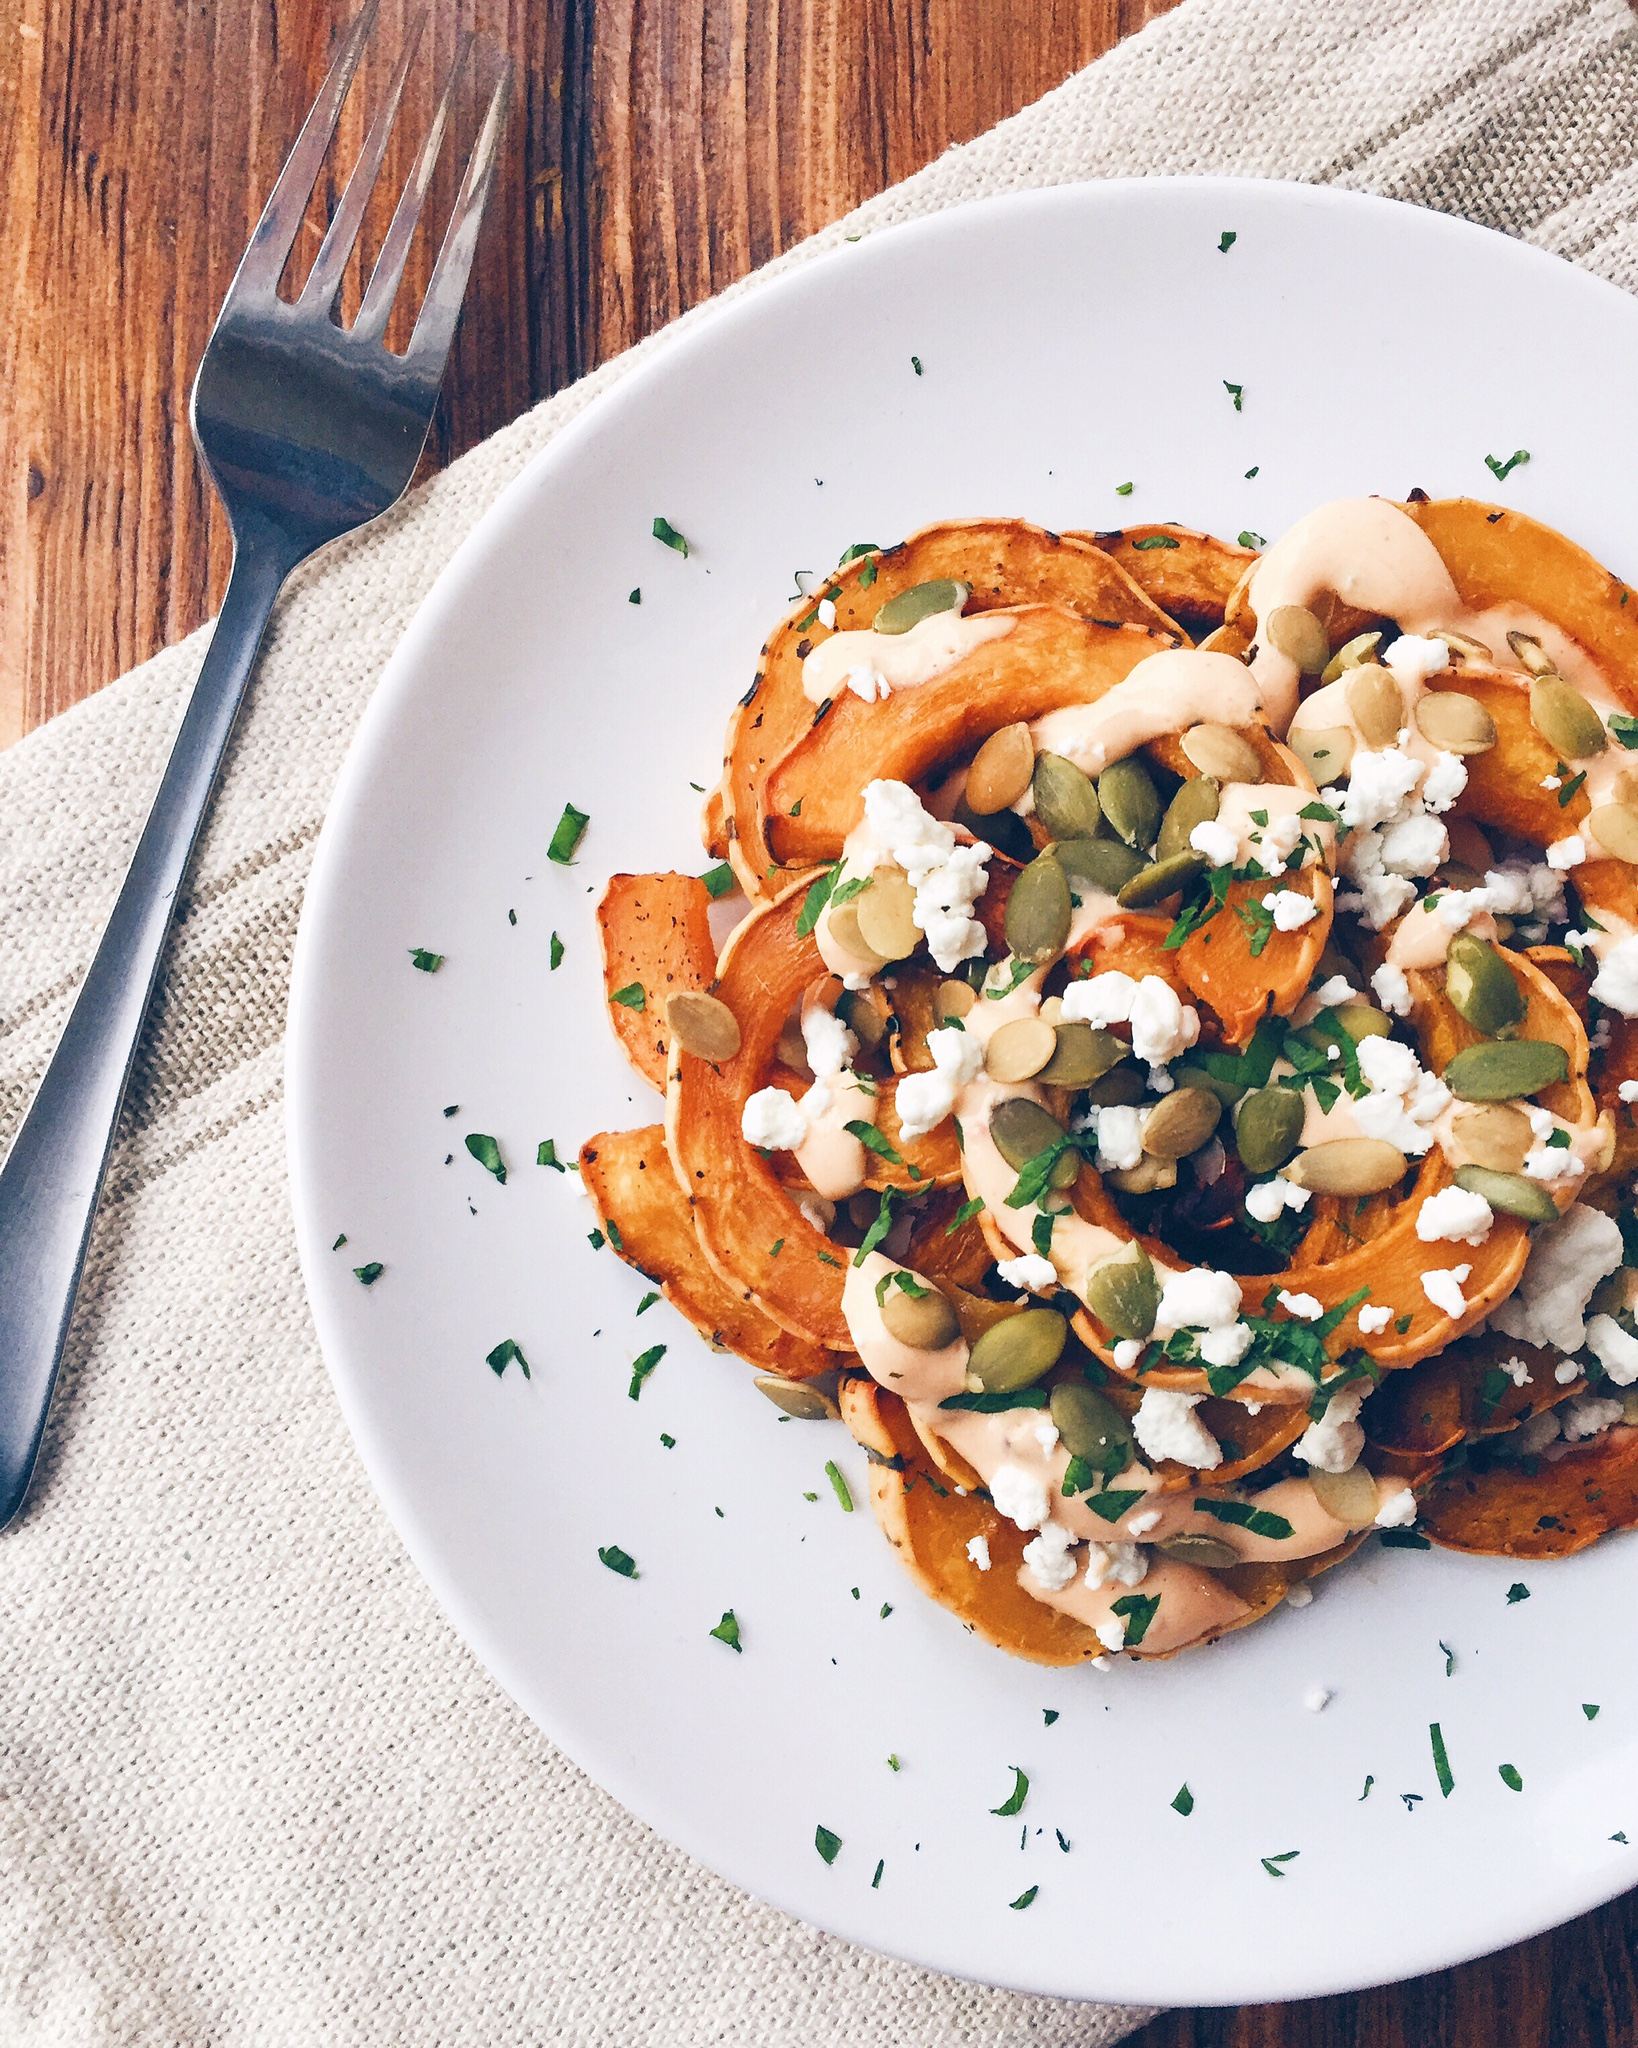 Roasted Delicata Squash With Goat Cheese, Pumpkin Seeds and Jalapeño Yogurt Sauce